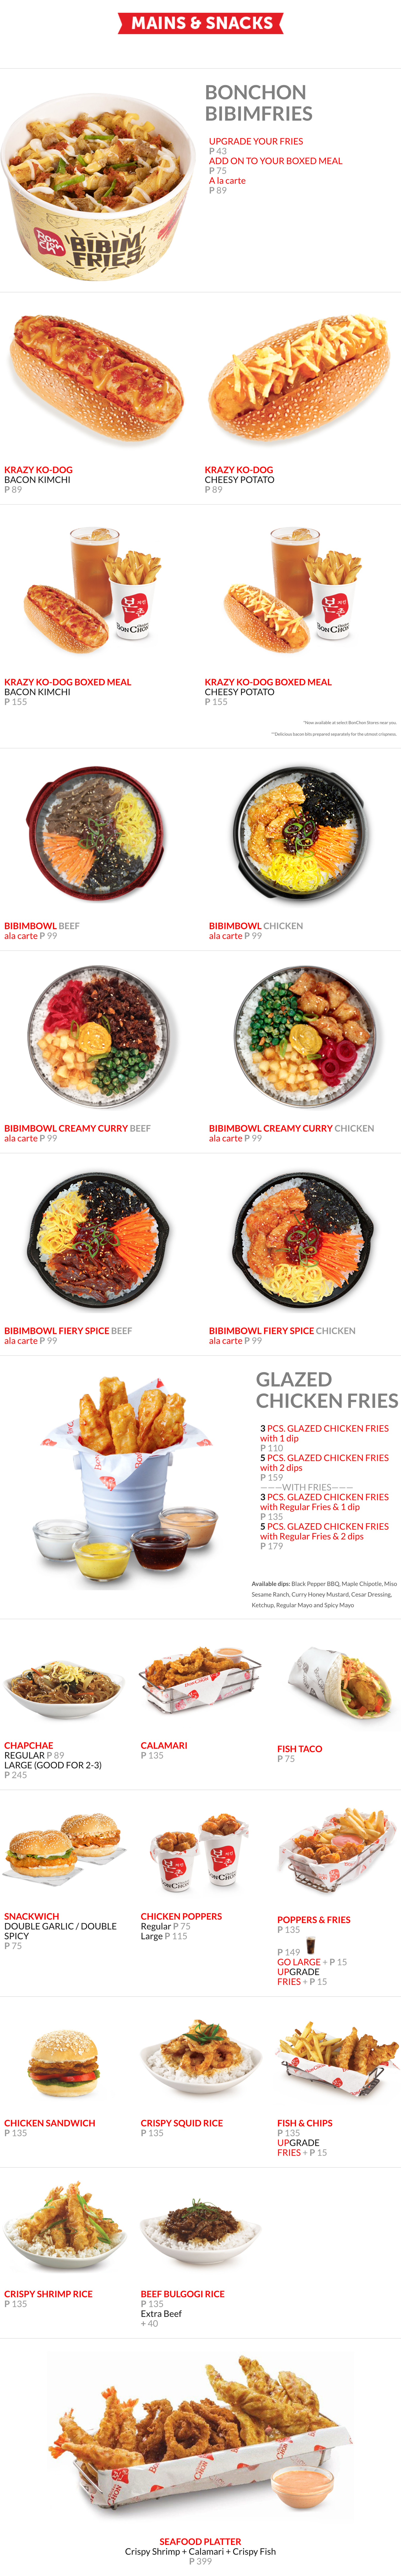 Bonchon Mains and Snacks Menu